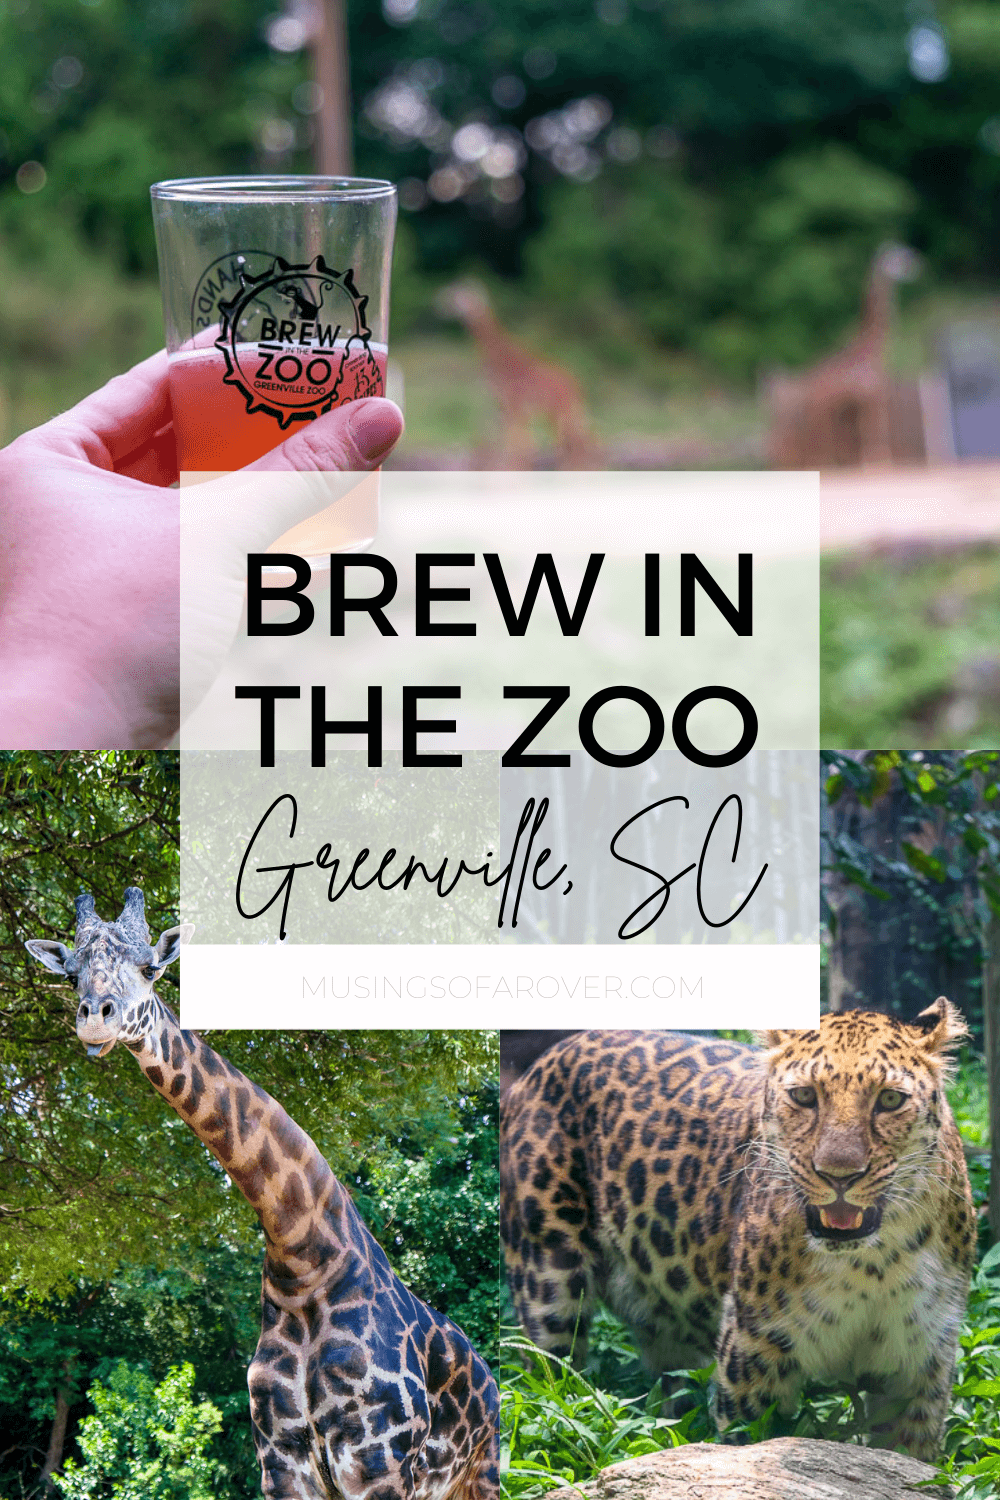 The Greenville Zoo hosts several special events each year and Brew in the Zoo is one of the best if you like craft beer. This adults only after hours event will let you try beer from a dozen or so local breweries while you stroll the zoo. Food is also included and provided by local restaurants.